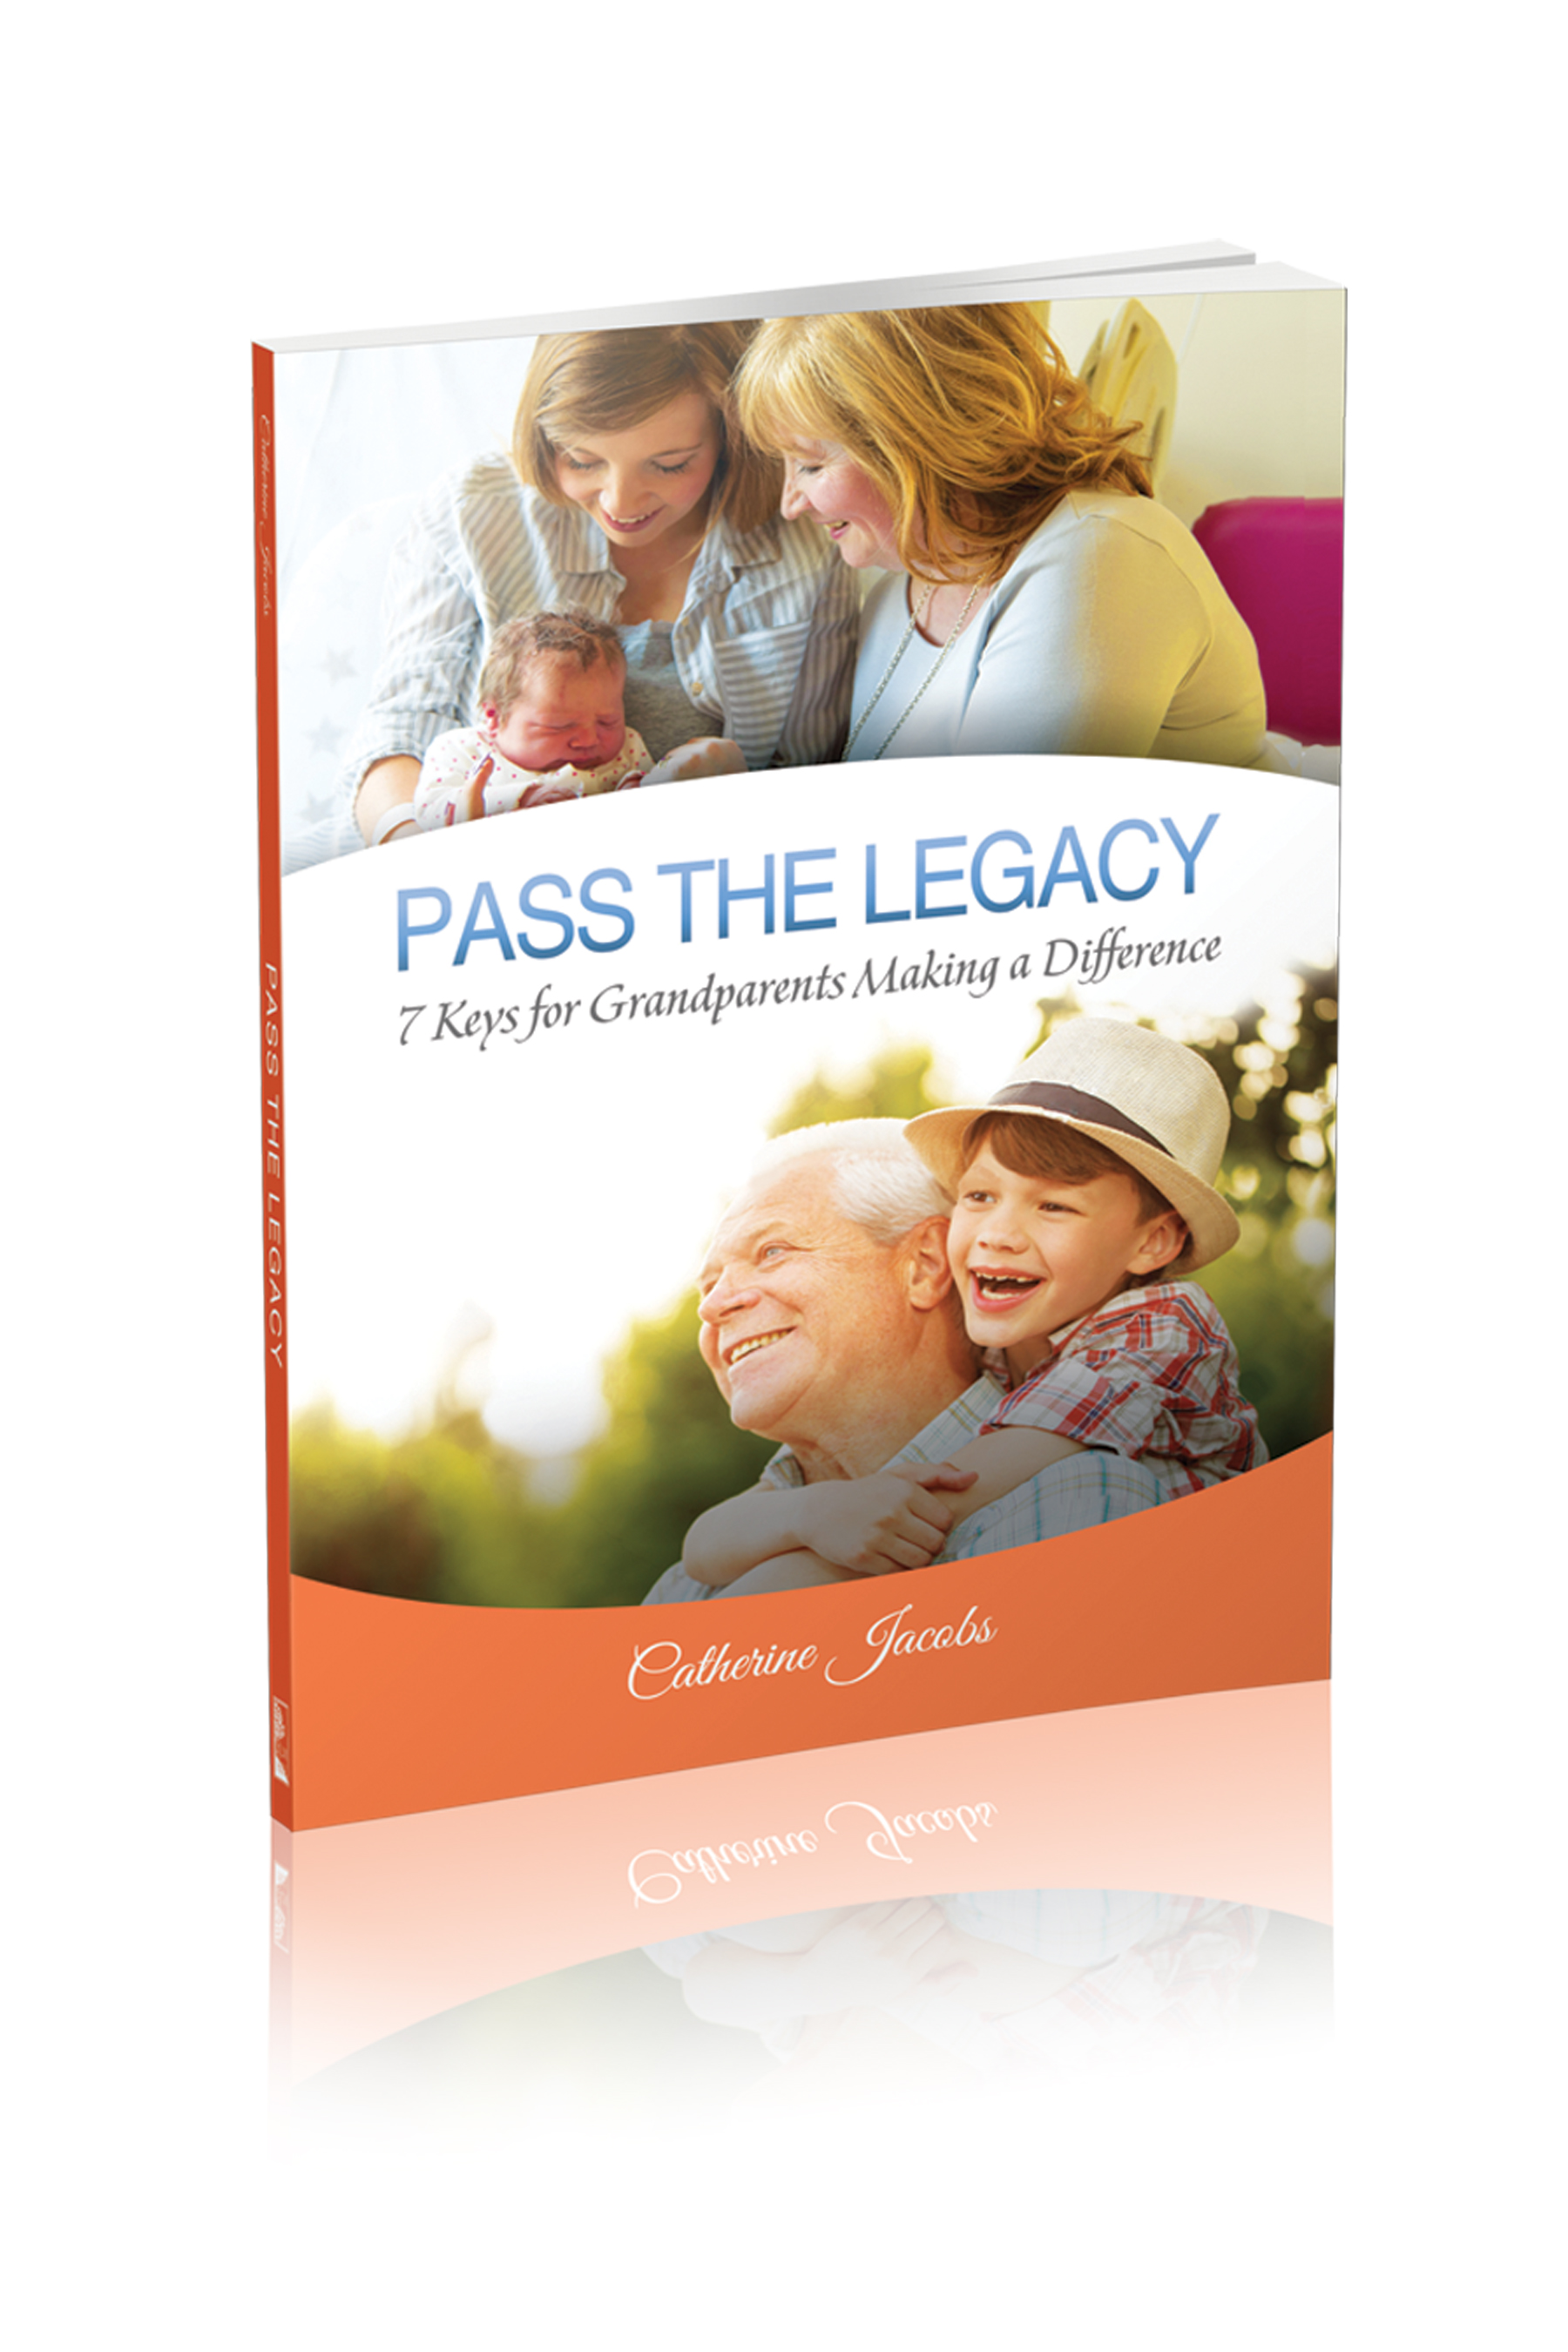 Pass the Legacy: 7 Keys for Grandparents Making a Difference